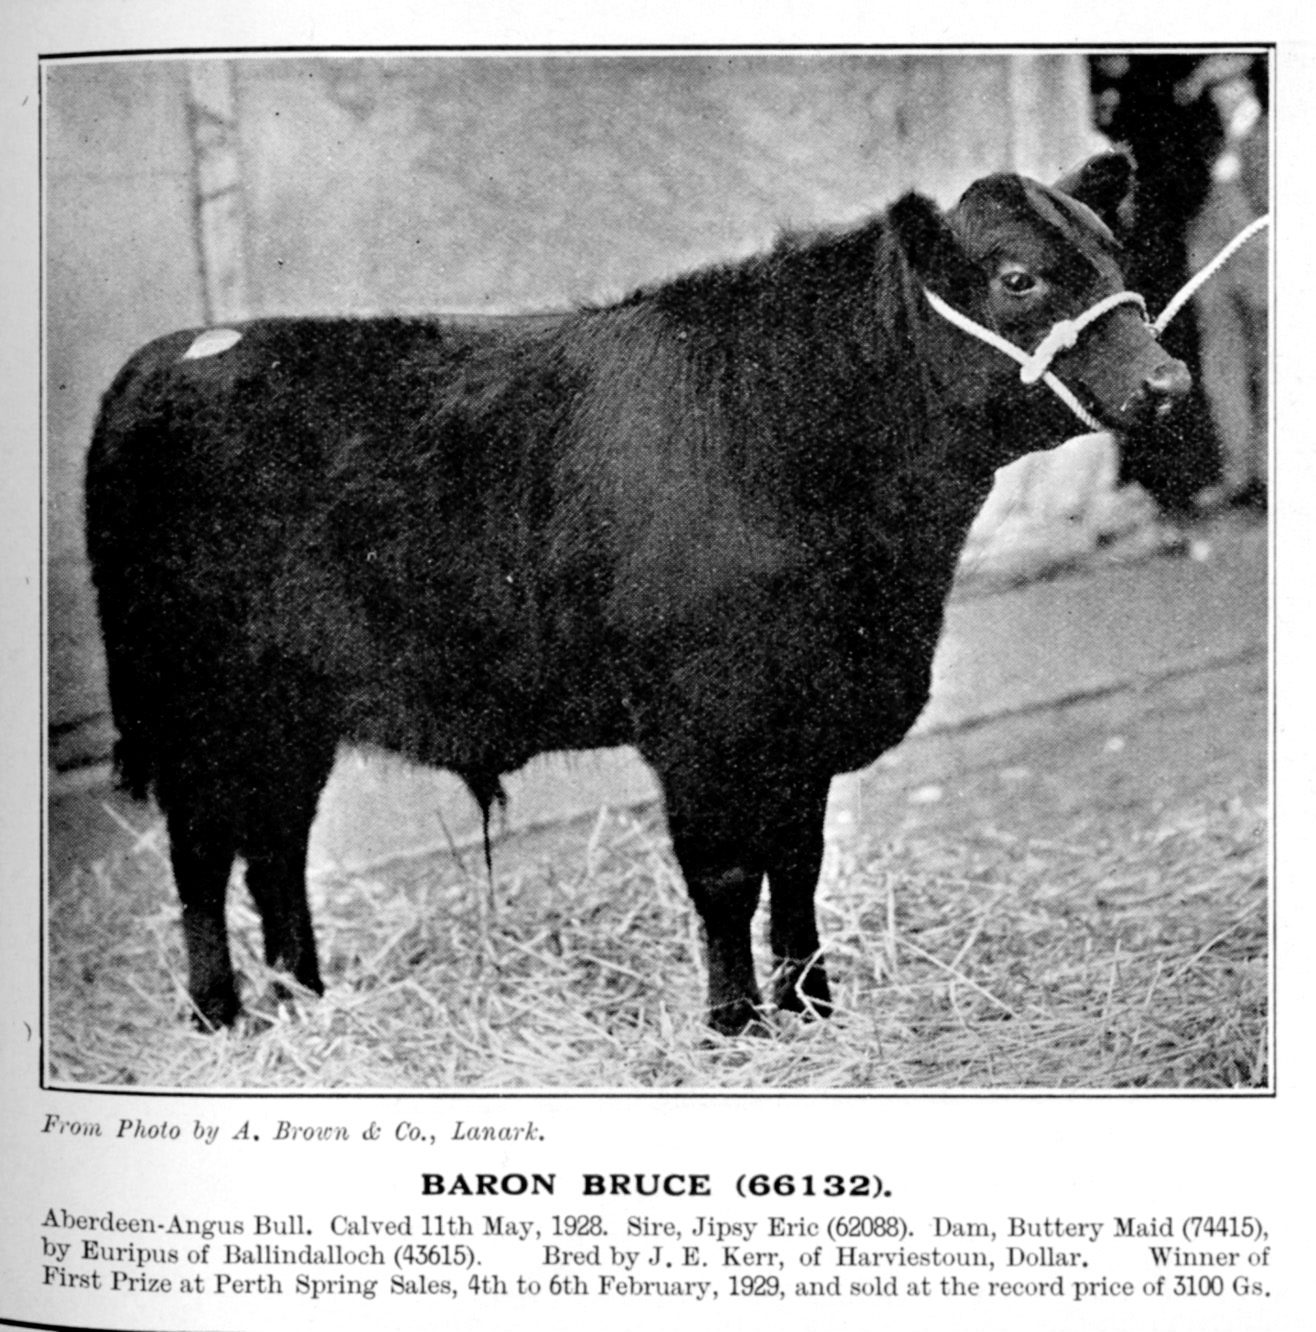 Baron Bruce, by Jipsey Eric and bred by JE Kerr, of Harviestoun, Dollar, was a first prize winner at the Perth Bull Sales in 1929 before going on to sell for a record price of 3100gns